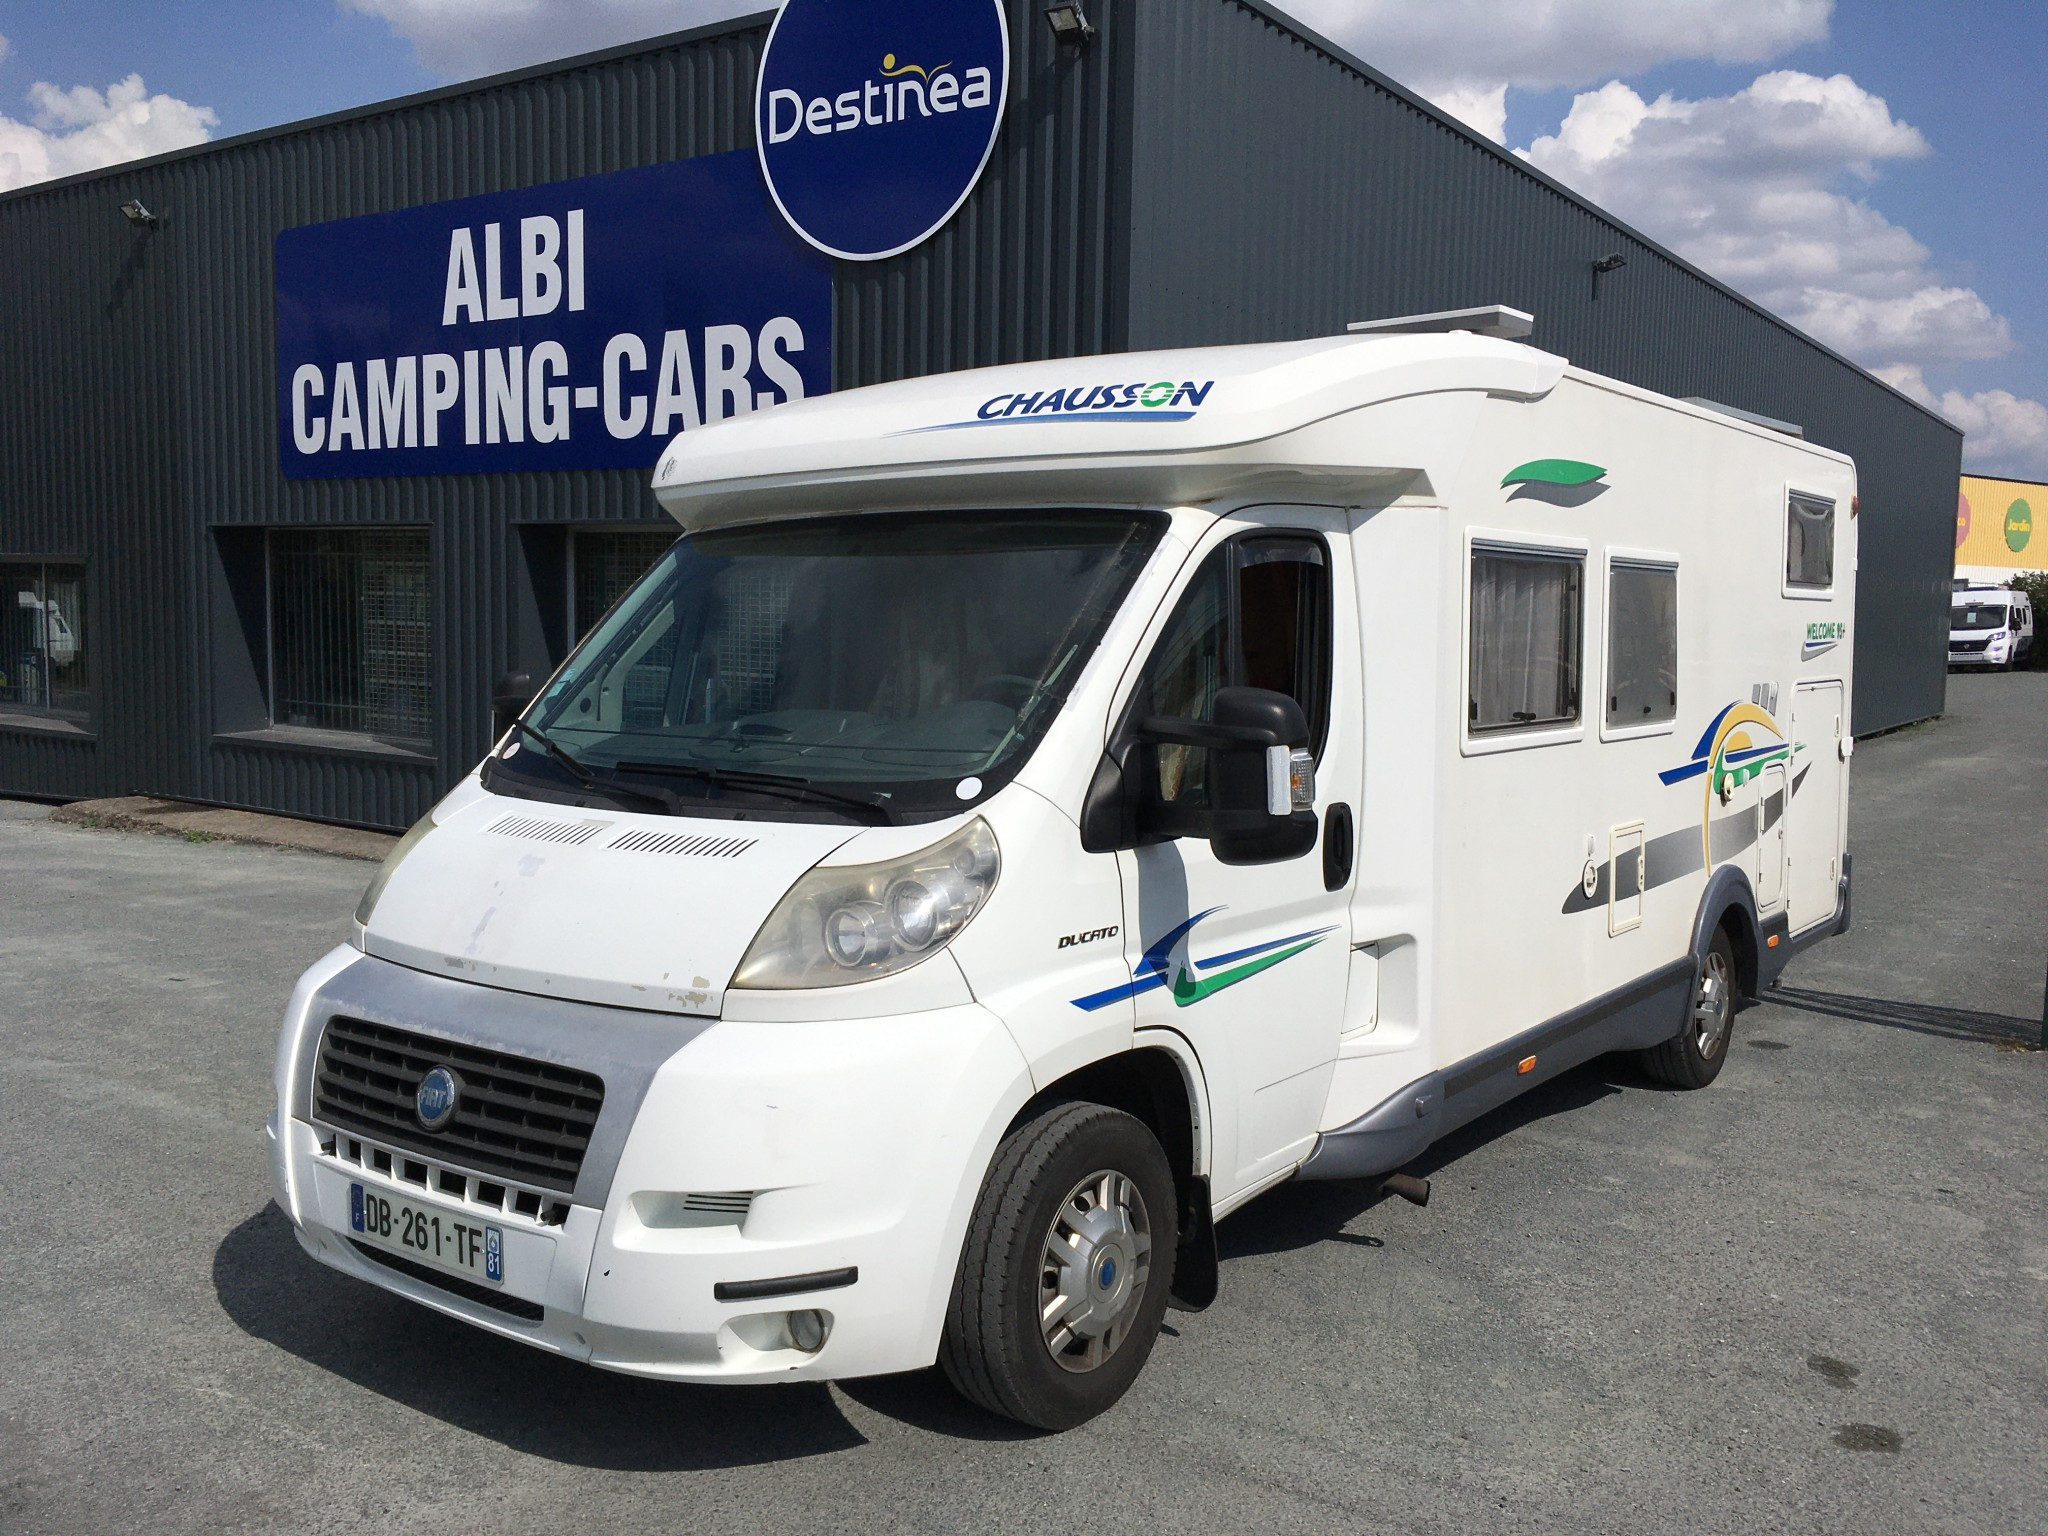 Camping-car CHAUSSON WELCOME 95